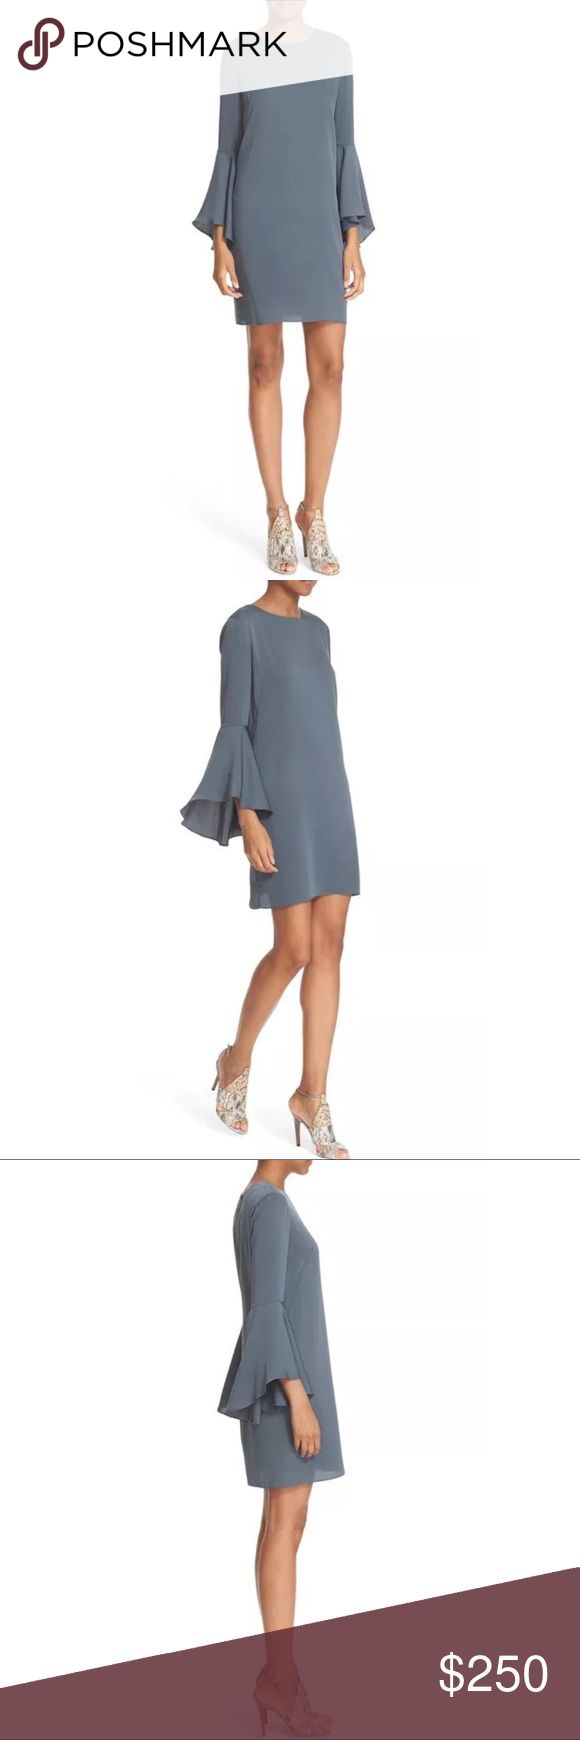 MILLY 10 Grey Silk Bell Sleeve Crepe Shift Dress Retail $425 NWT. Price Firm.  Flowy bell sleeves bring charming flutter to a figure-skimming shift fashioned from soft, stretch-woven silk. Hidden back zip with button-loop keyhole closure. Jewel neck. Three-quarter bell sleeves. Lined. 92% silk, 8% elastane. Dry clean. By Milly; imported. Individualist. Item #5217108 Measurements according to brand: Bust 37 Waist 29 Hips 39.  #0128 Milly Dresses